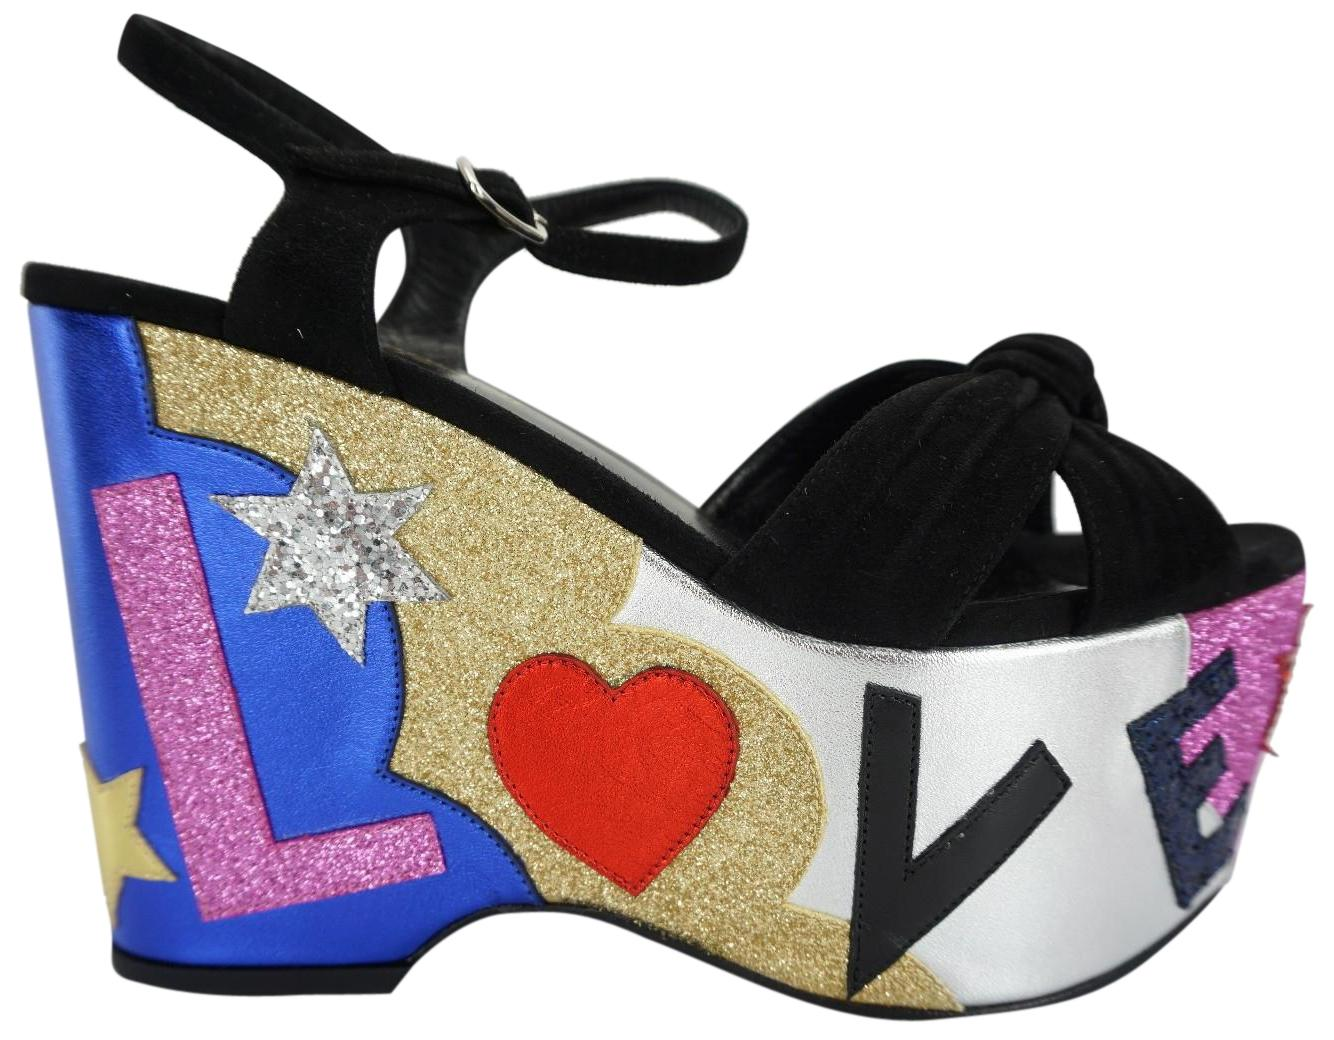 4c6447dac849 Saint Laurent Black Suede Candy Glitter Strappy Multi Love Love Love Sandals  Platforms Size EU 37 (Approx. US 7) Regular (M